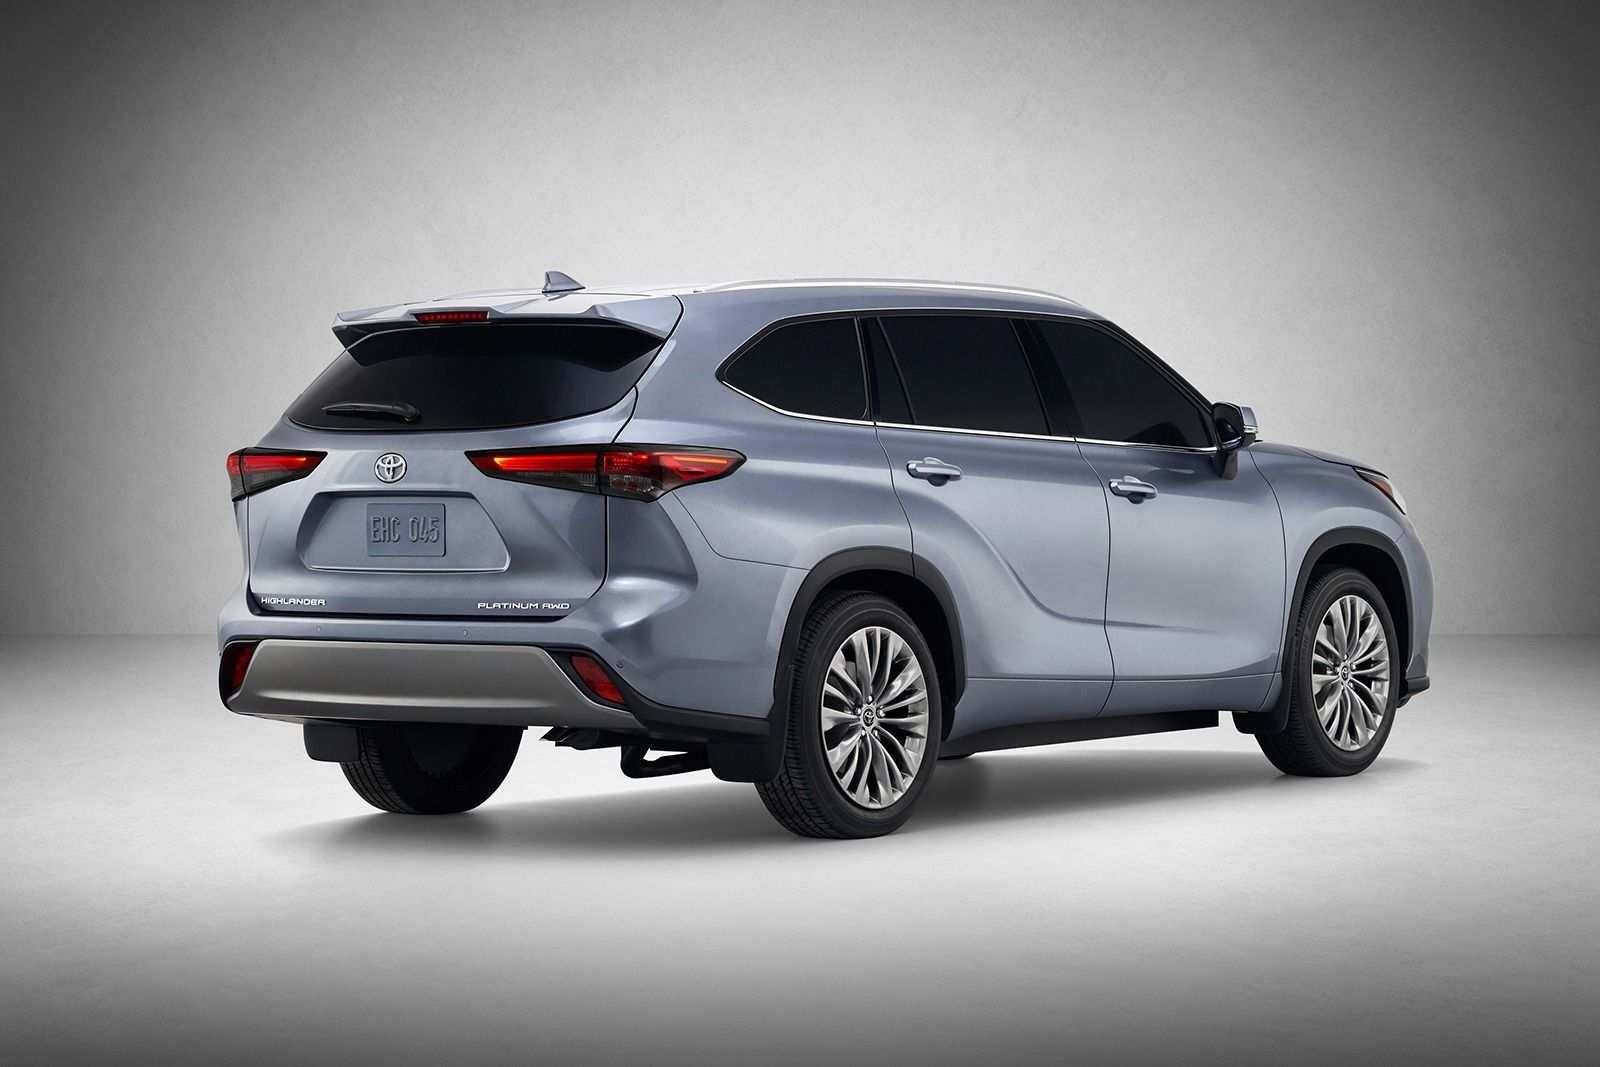 14 Concept of Toyota Highlander 2020 Release Date Performance and New Engine with Toyota Highlander 2020 Release Date